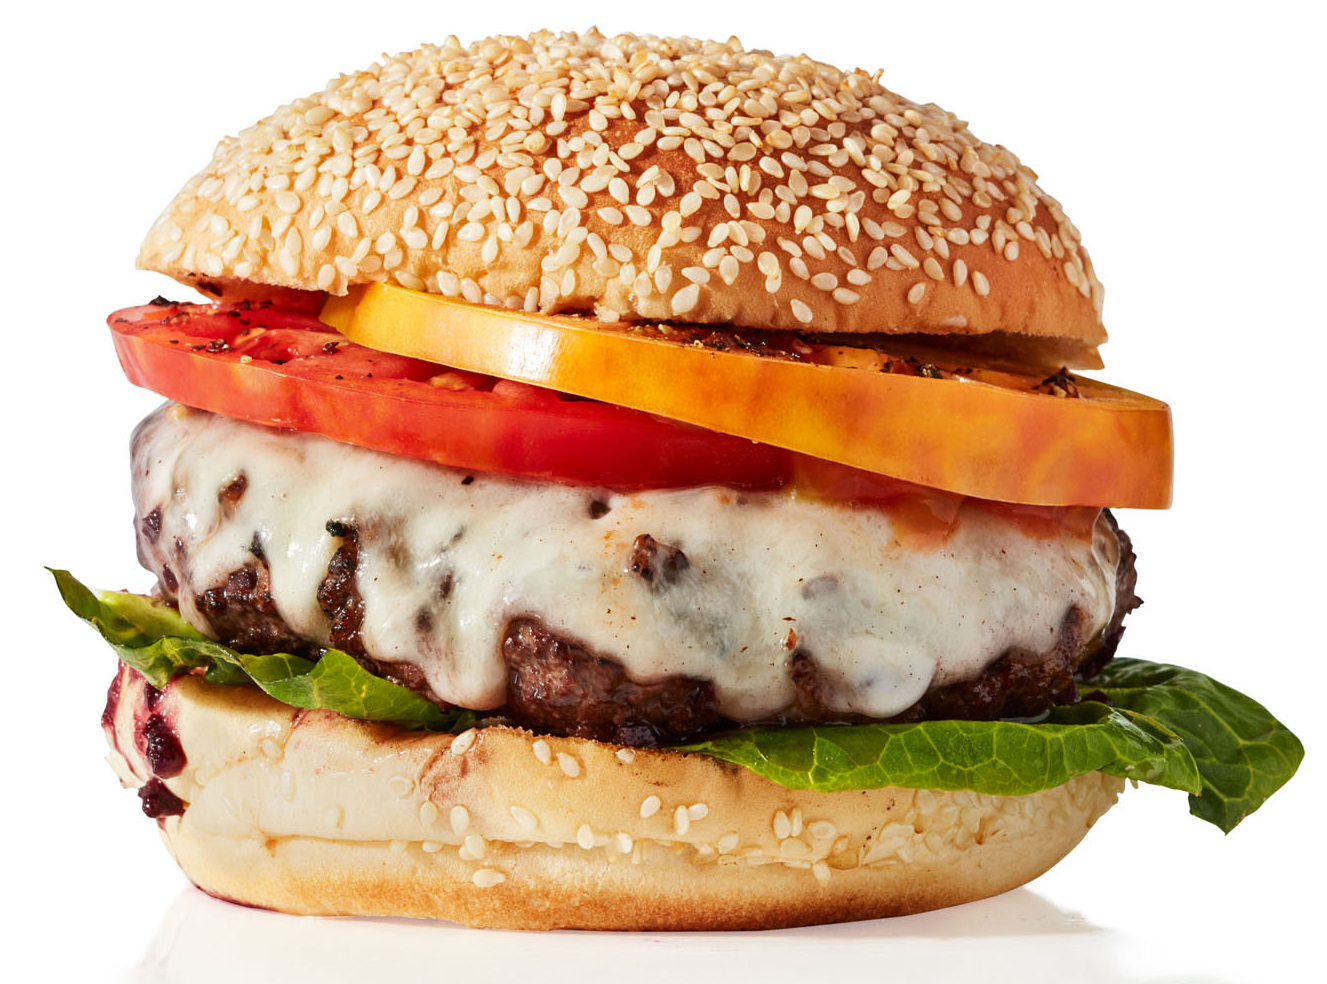 Winey Burger with Heirloom Tomatoes